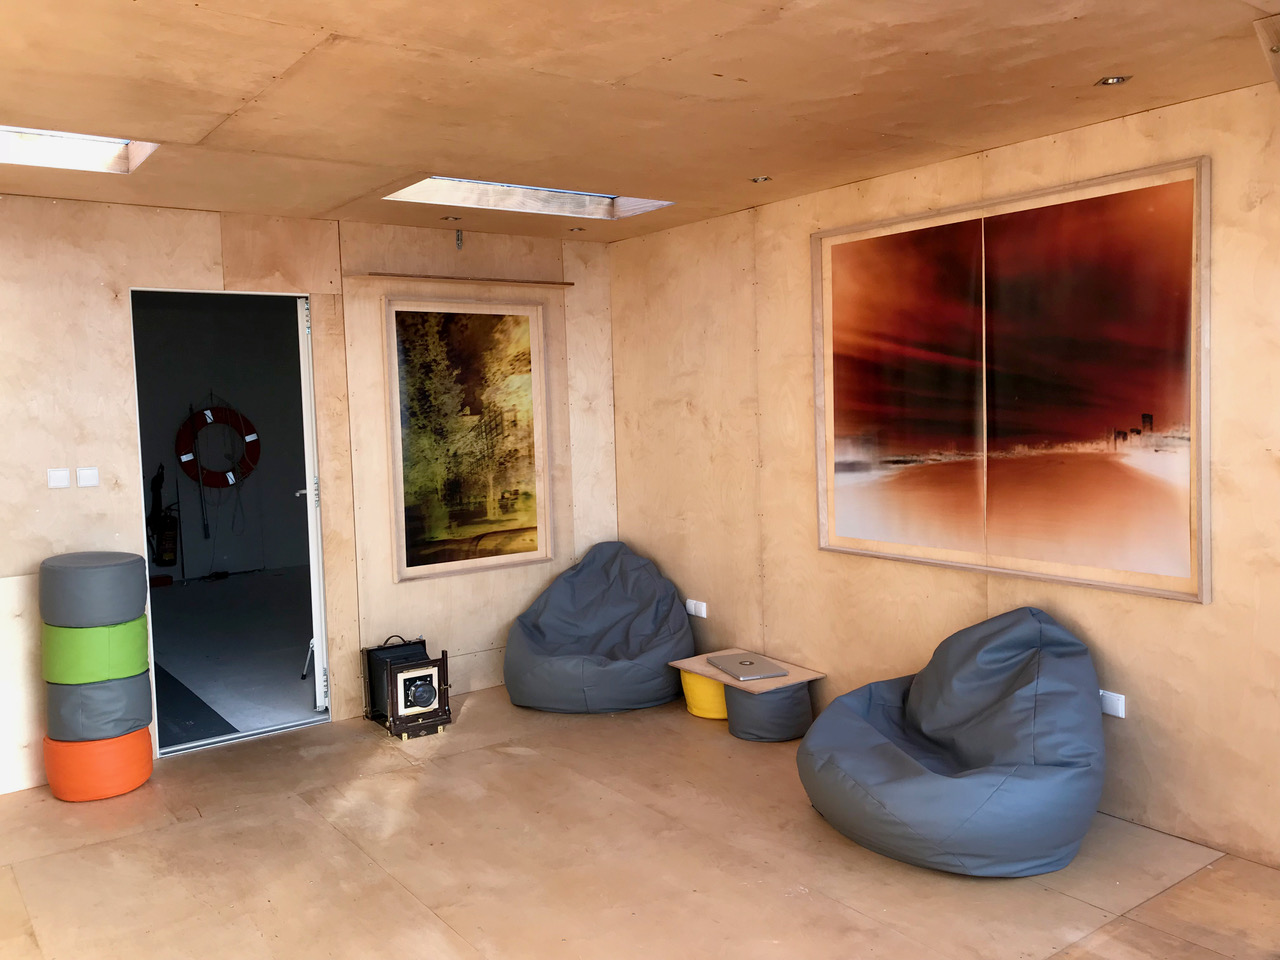 Artist living studio space on the floating camera with photographs from the project hanging on the walls.